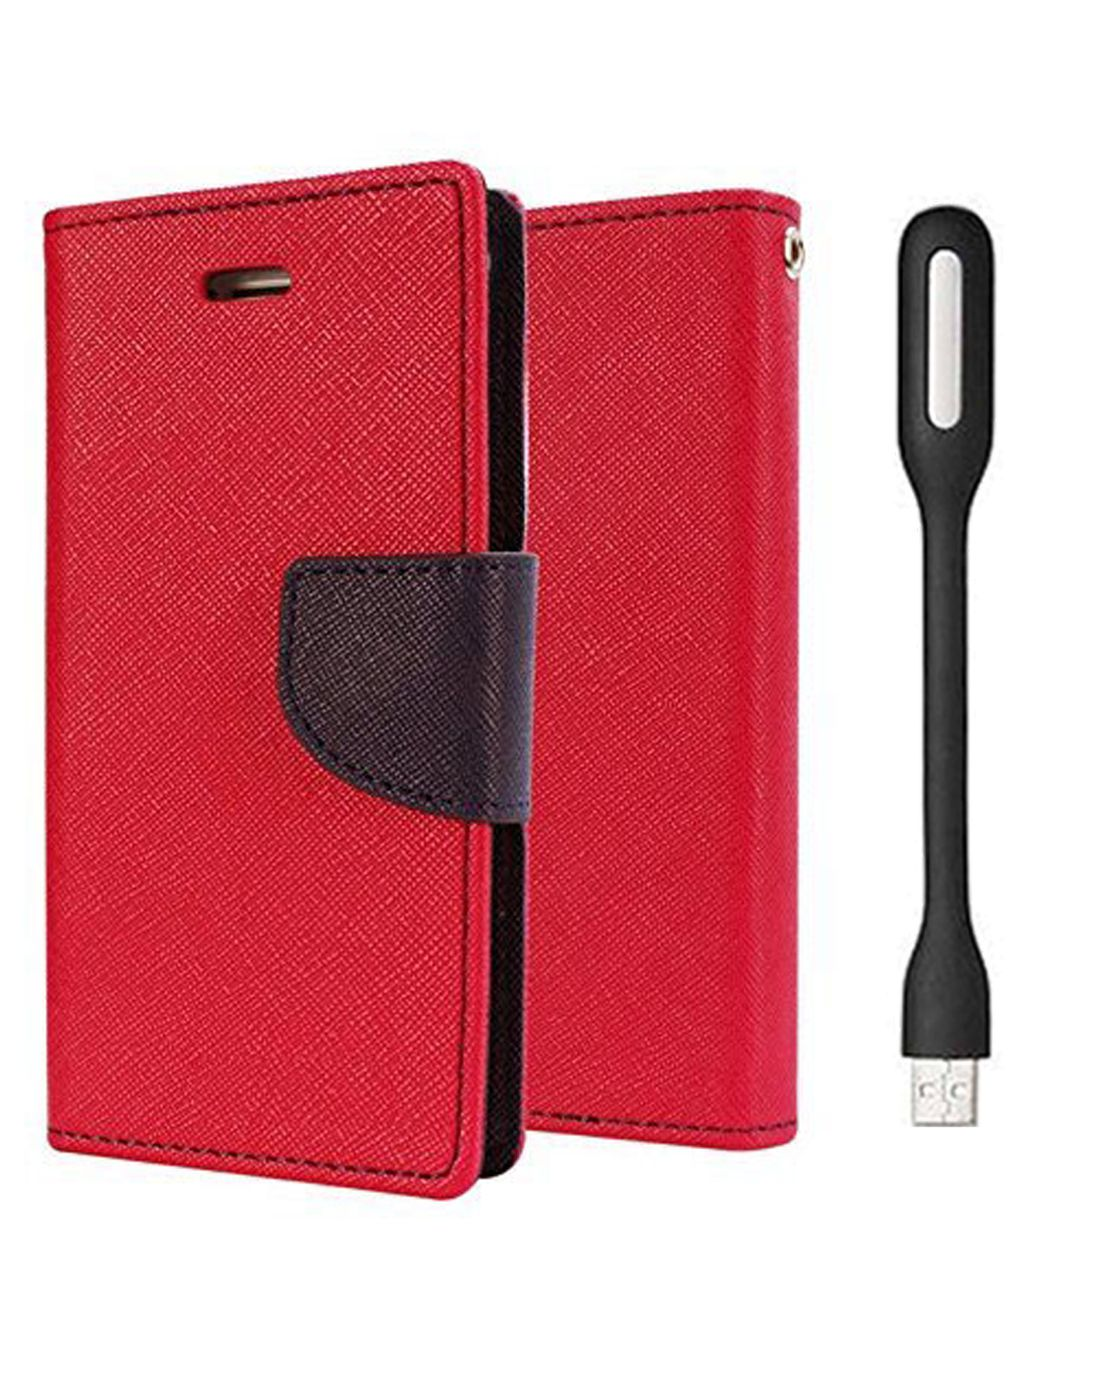 Wallet Flip Case Back Cover For Samsung A7 - (Red) + Flexible Mini LED Stick Lamp Light By Style Crome